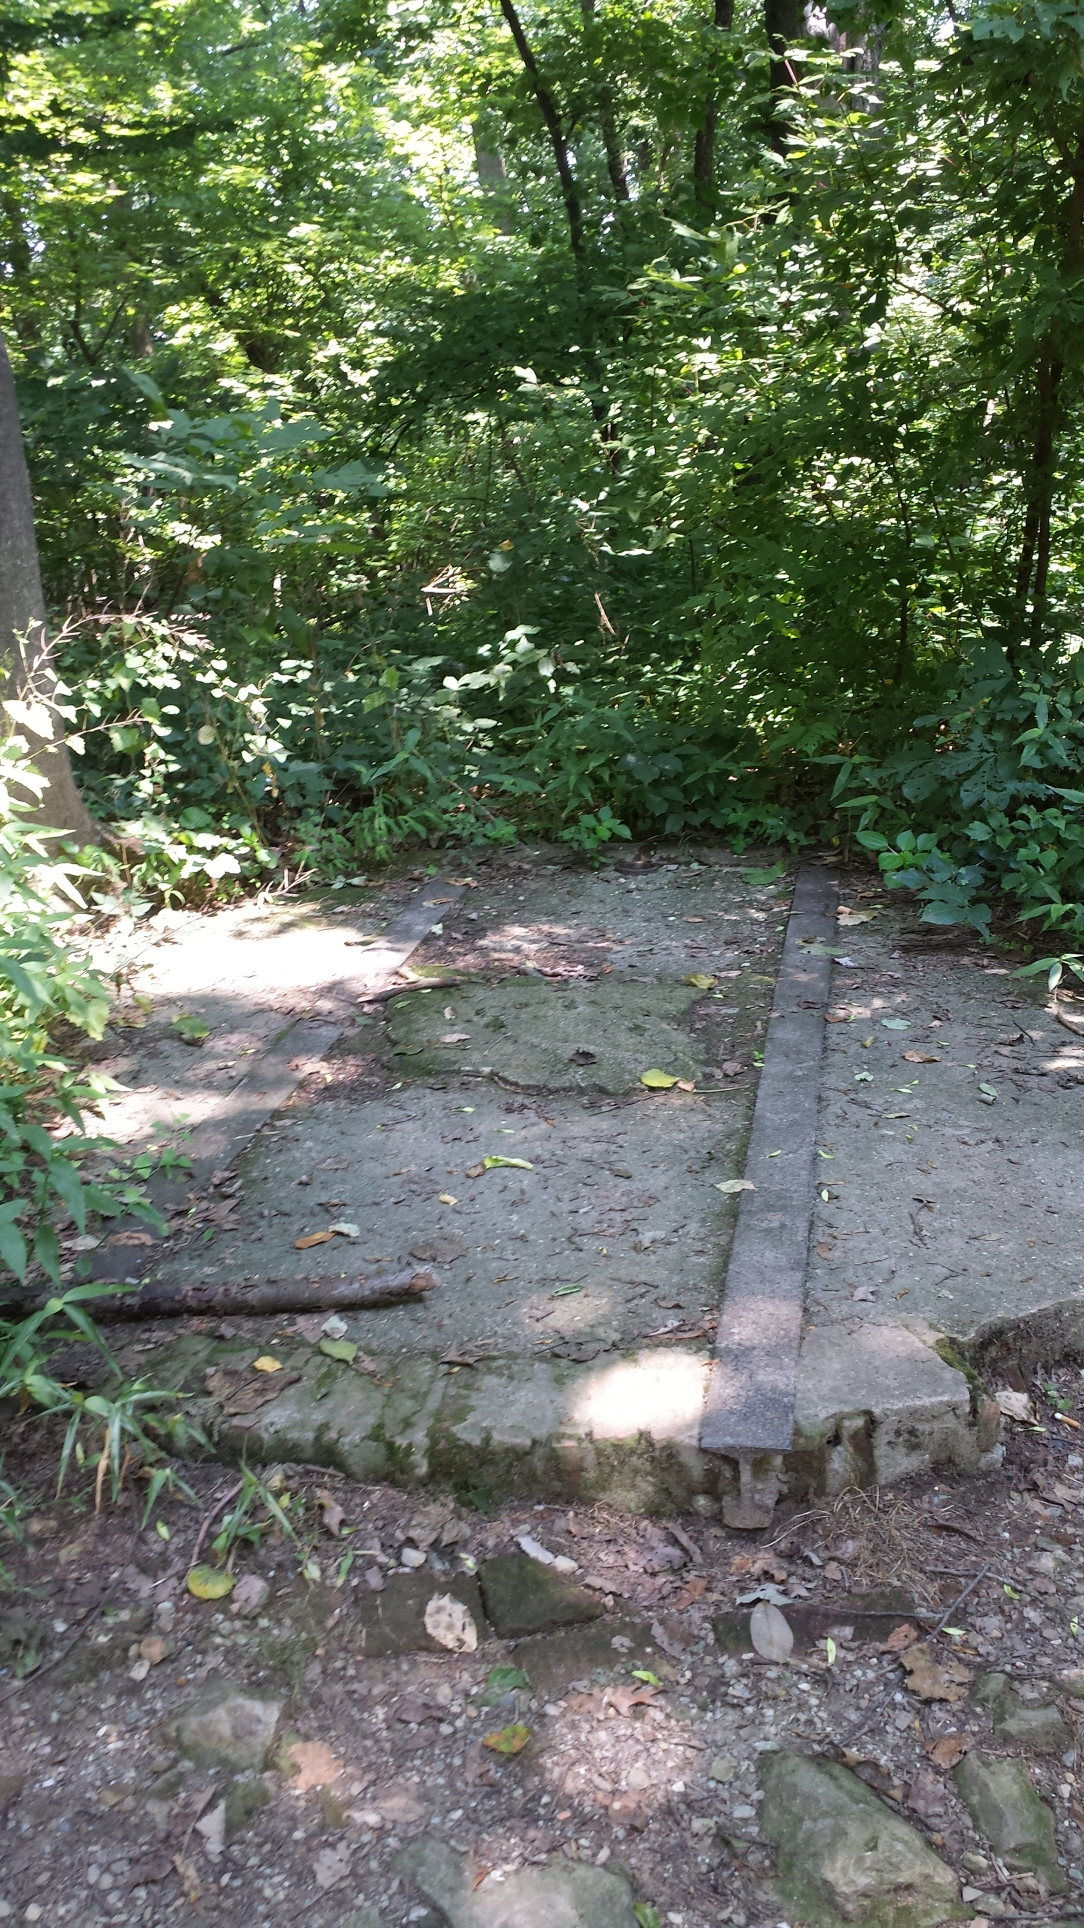 Remnants of the Trolley that used to run up Chickie's Rock until the Depression.